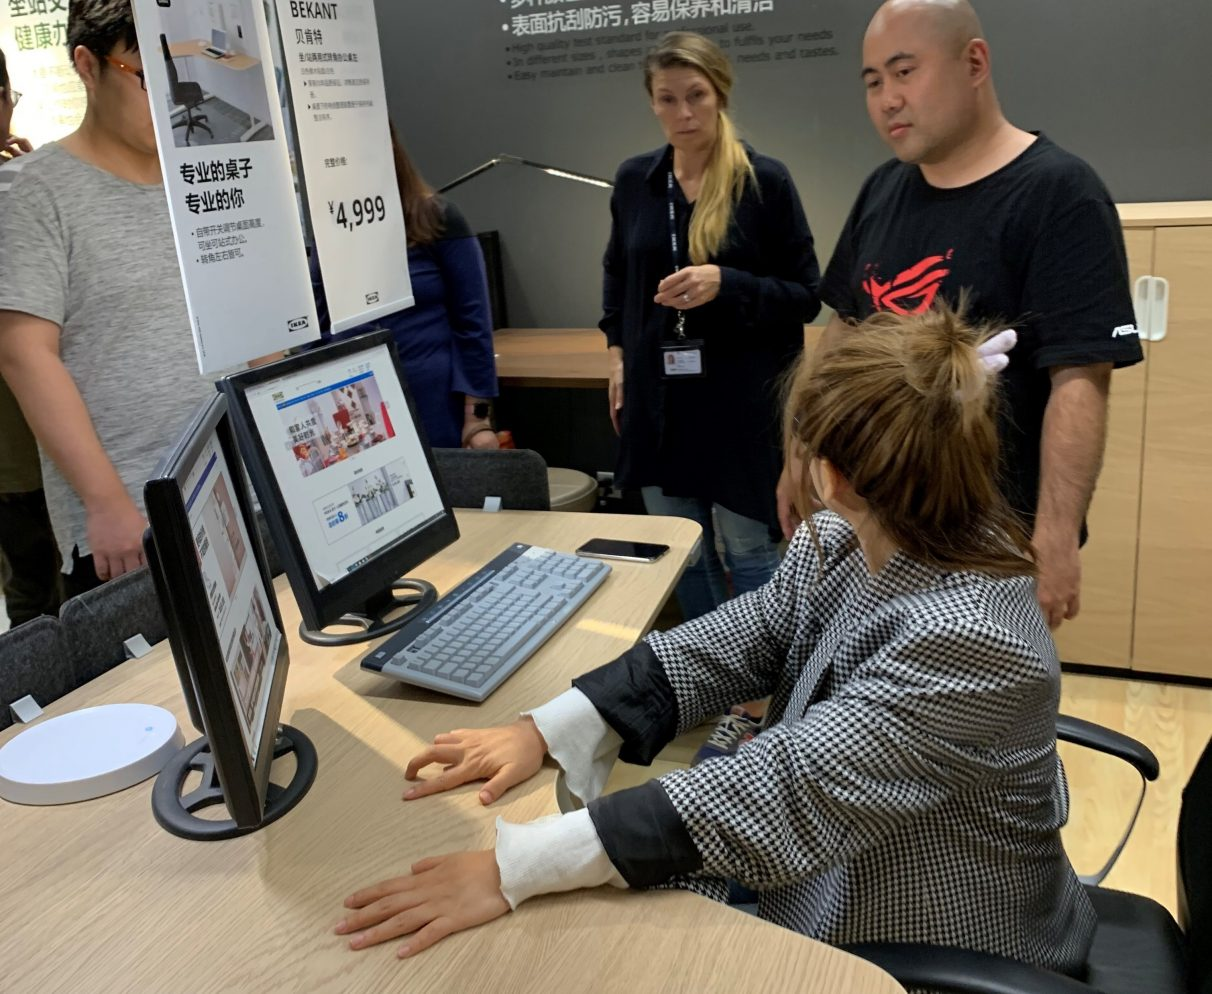 An photo from one of Asus and Ikea's design workshops, showing an Asus representative standing beside a woman seated at an existing Ikea desk.